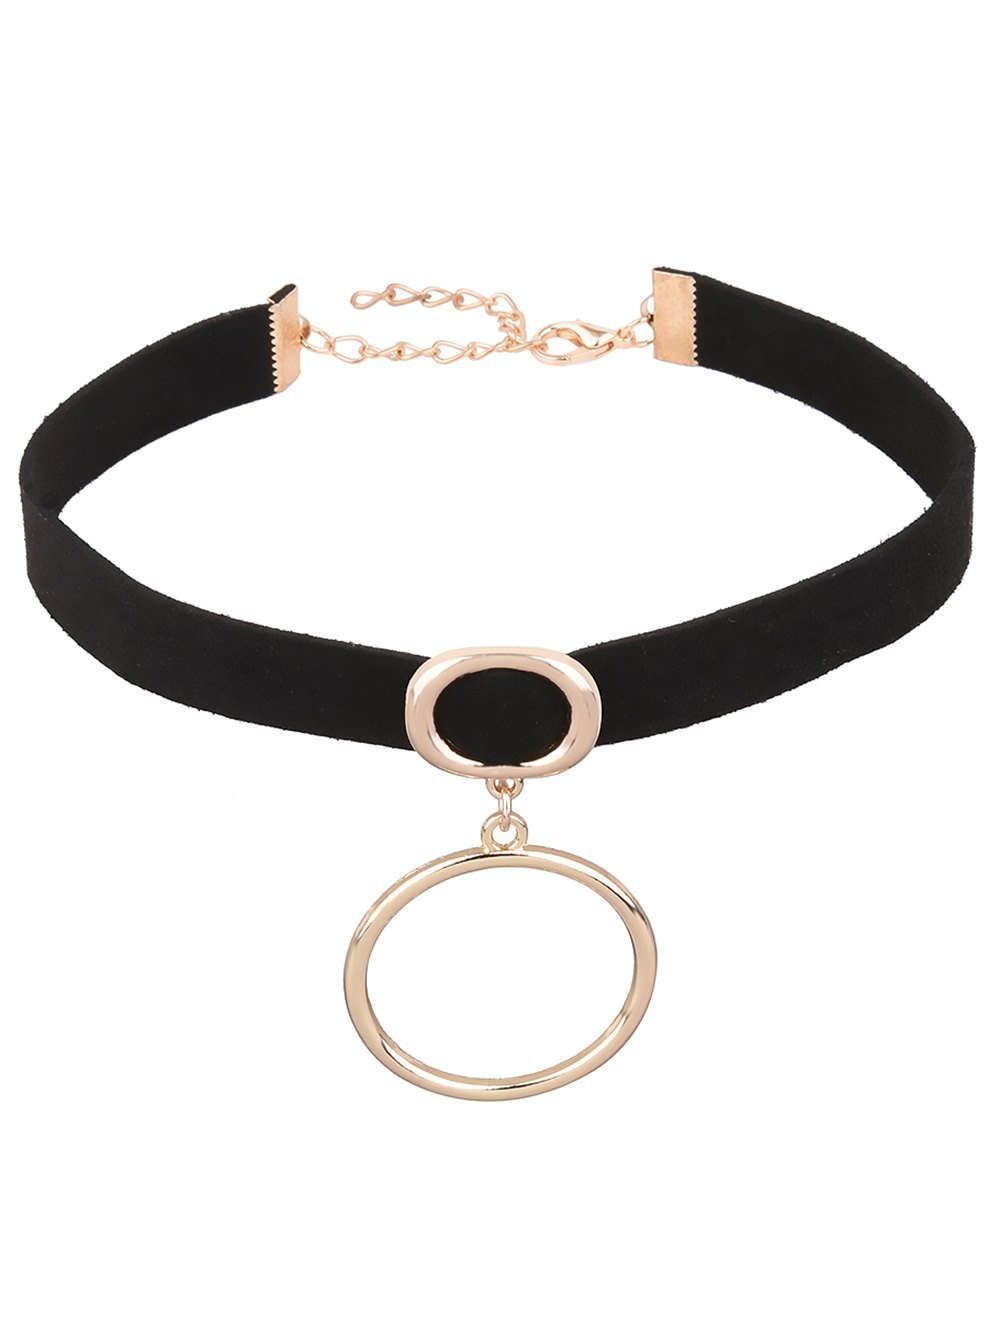 Artificial Leather Velvet Circle Choker